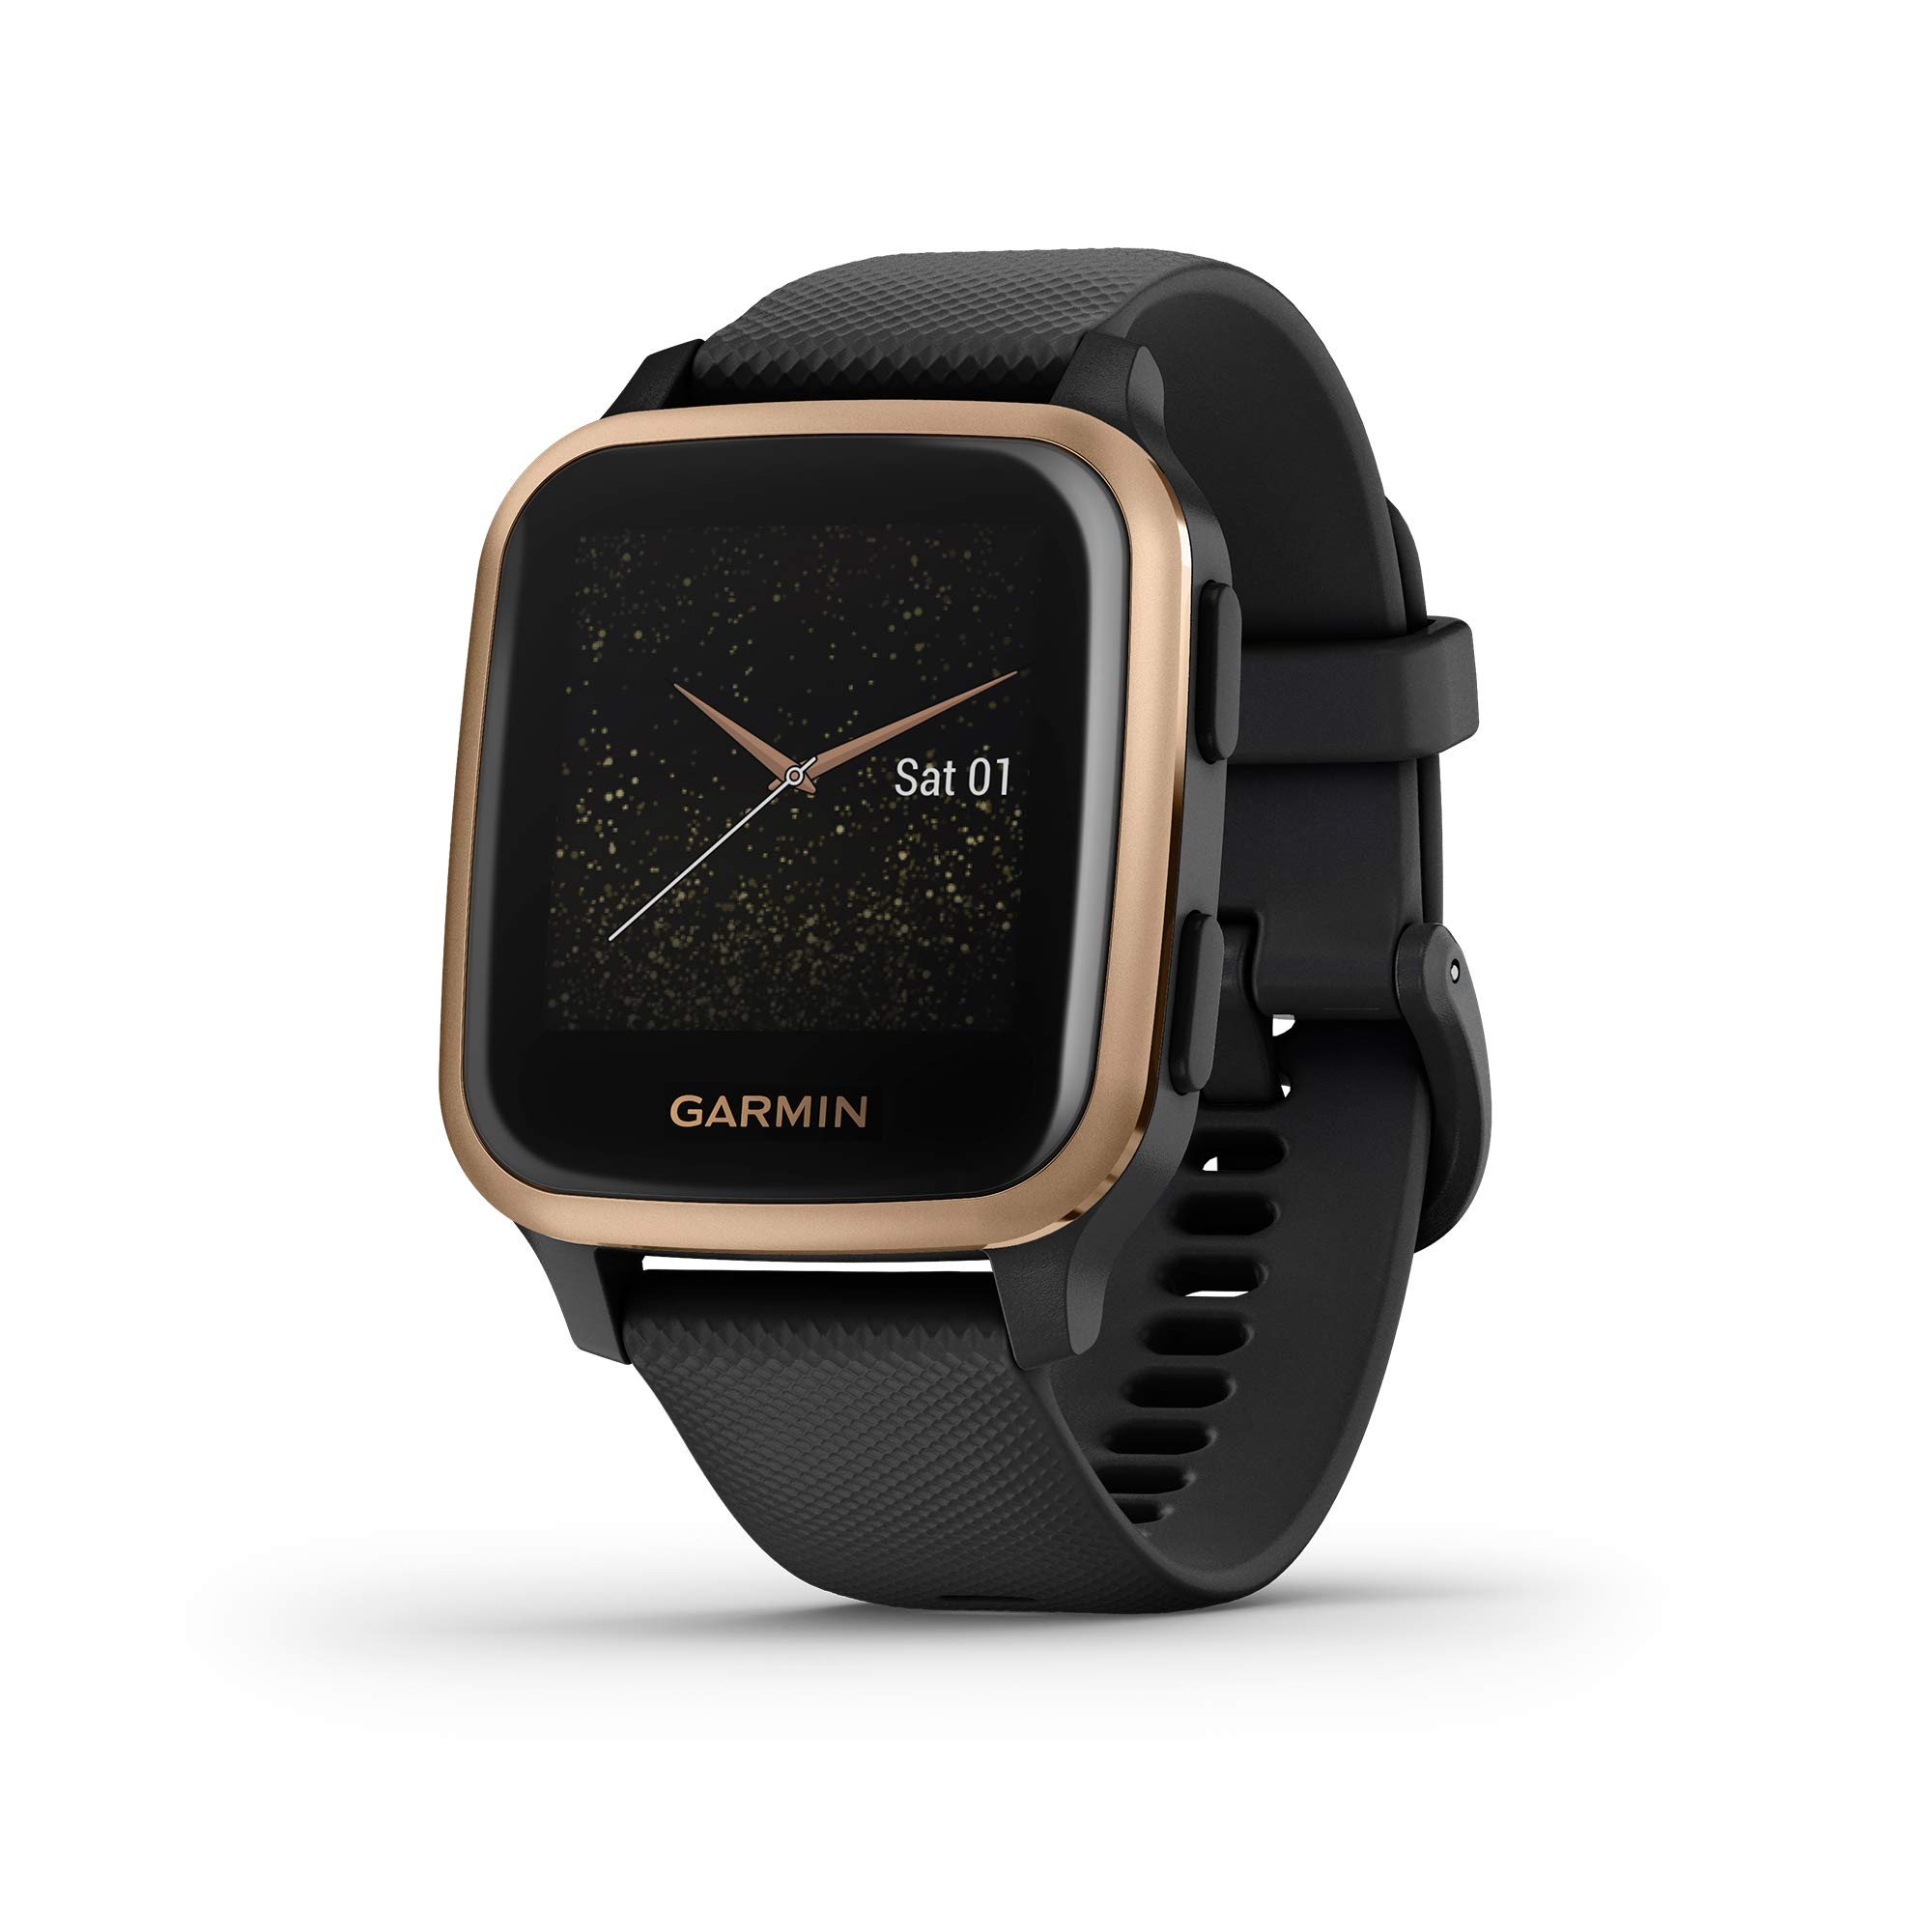 Garmin Venu Sq Music, GPS Smartwatch with Bright Touchscreen Display, Features Music and Up to 6 Days of Battery Life, Black and Rose Gold